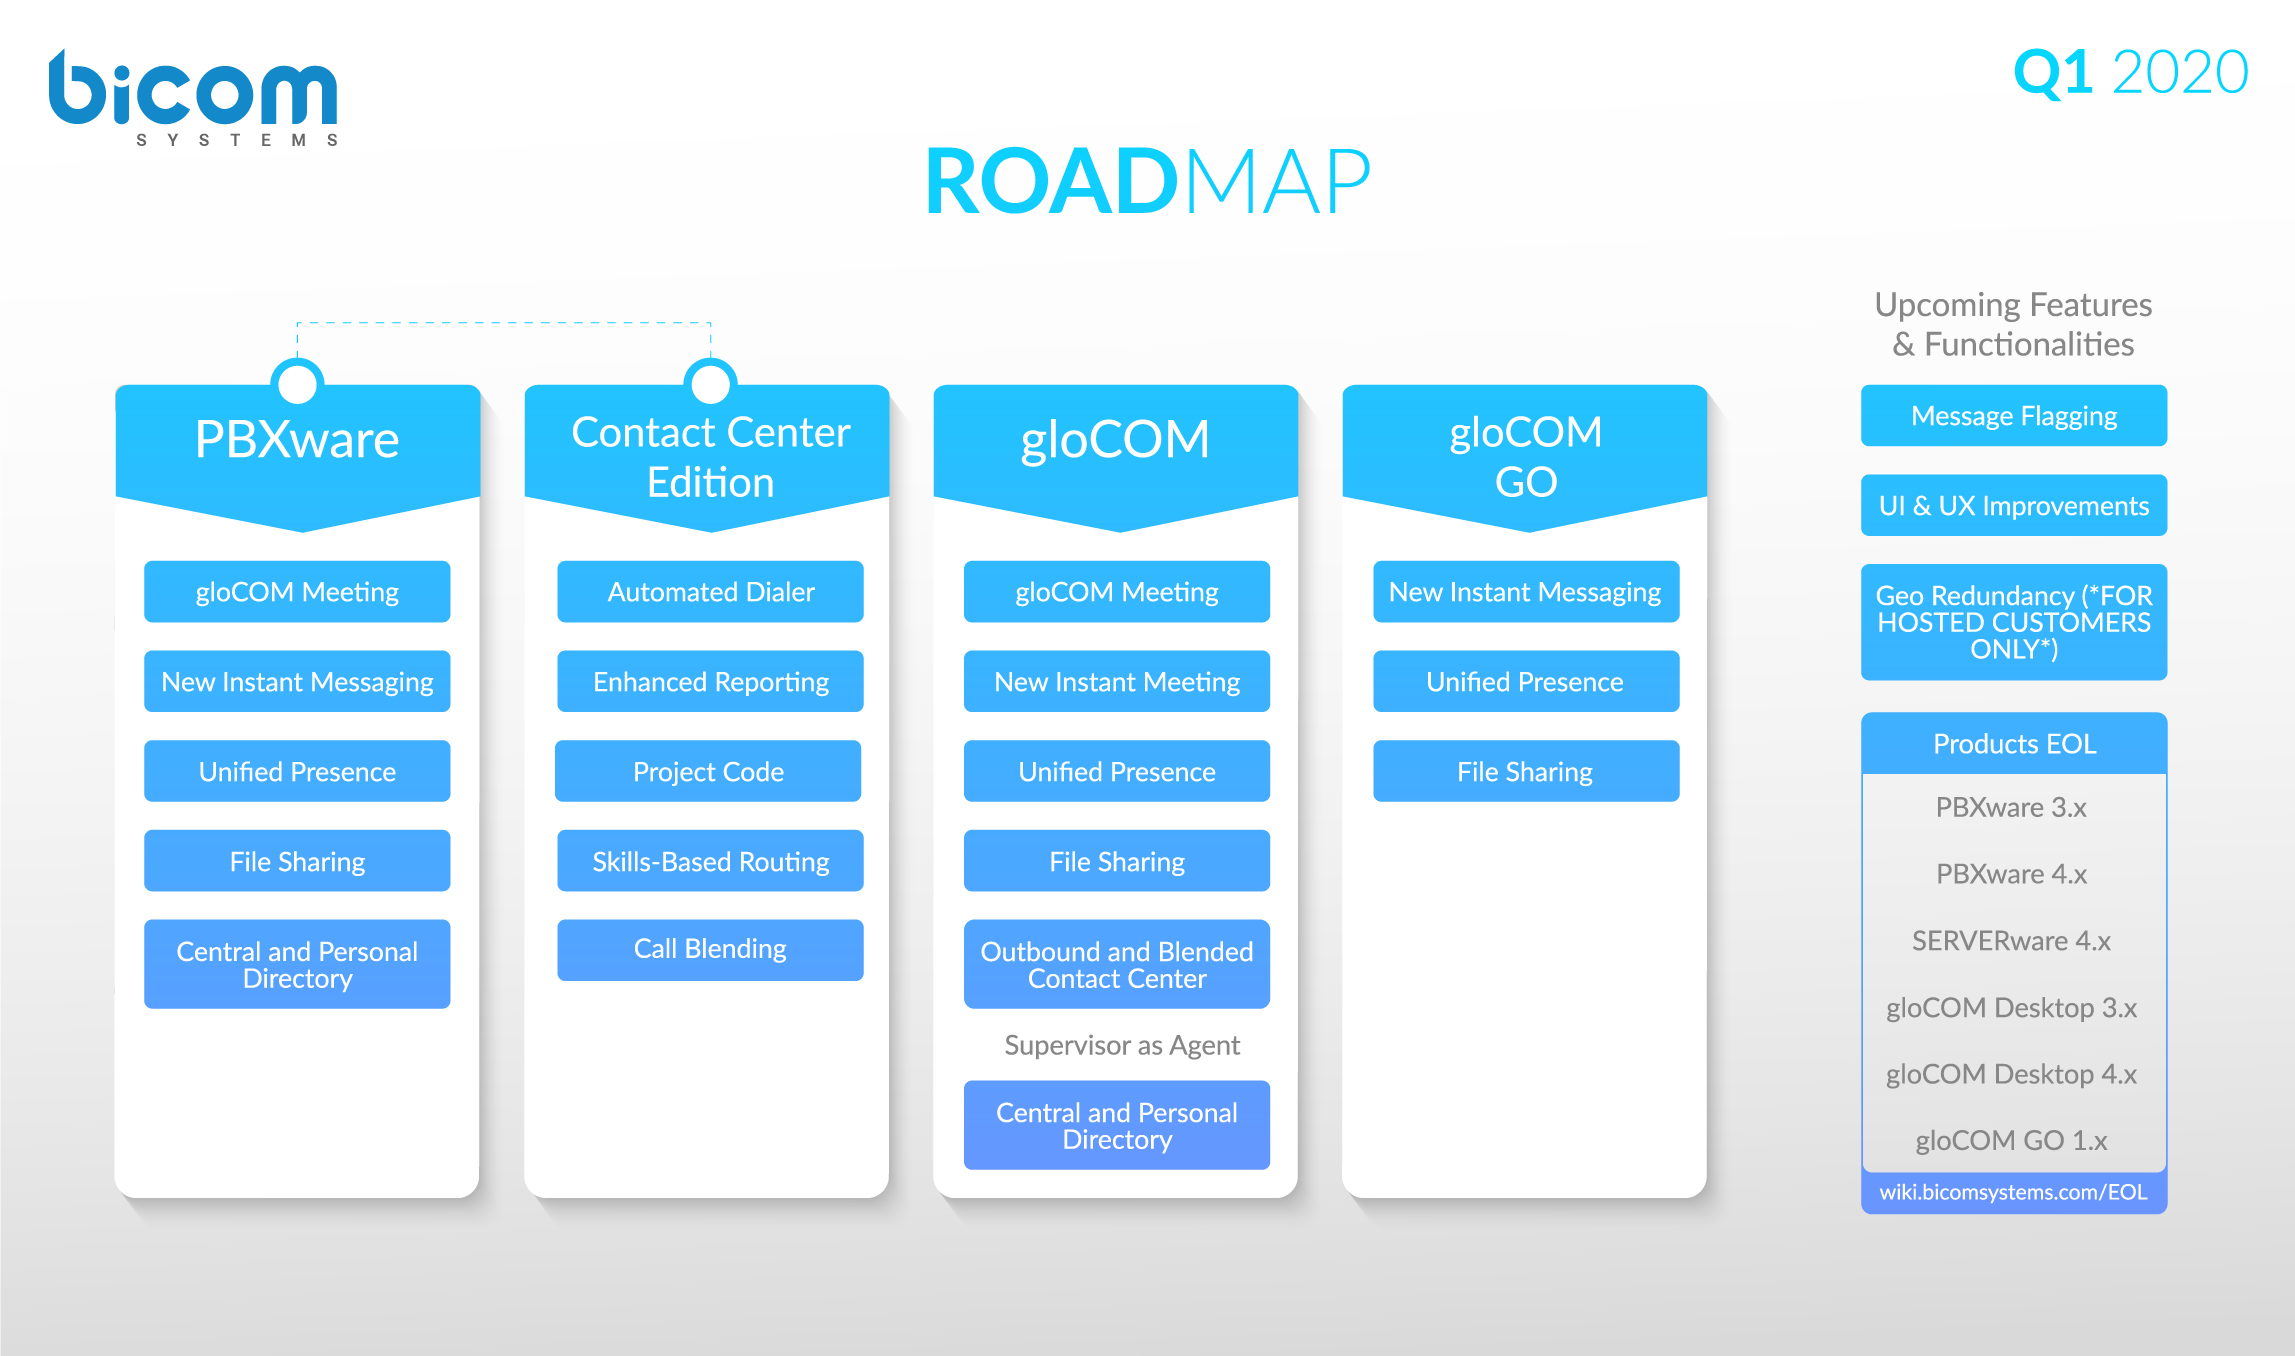 Bicom Systems Road Map for Q1